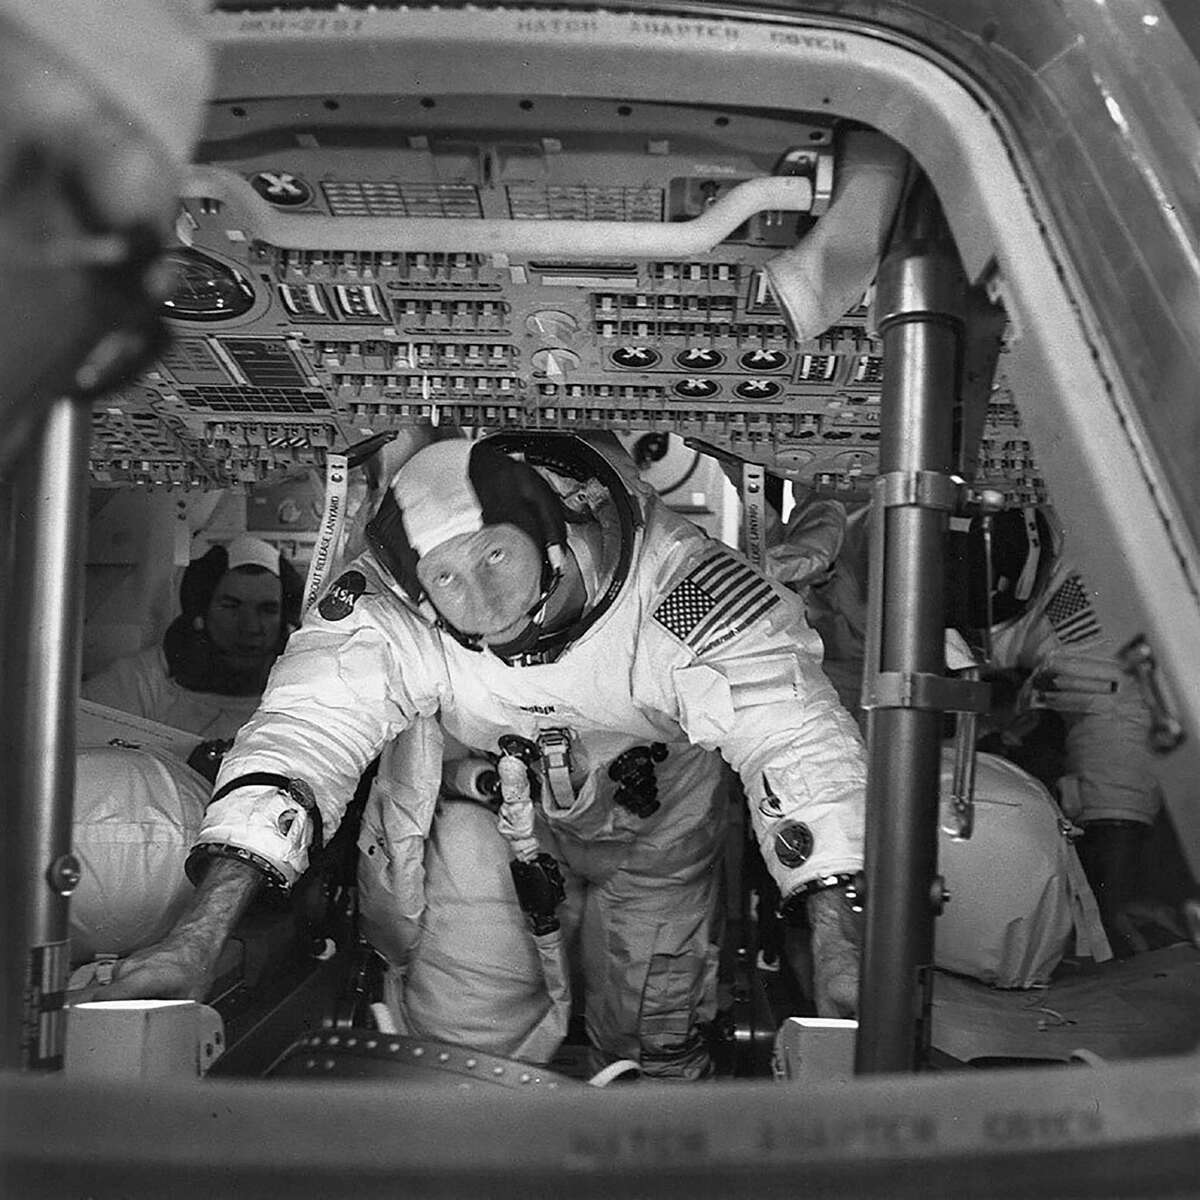 In an image provided by NASA, Alfred M. Worden, center, with his fellow astronauts Col. David R. Scott, left, and Lt. Col. James B. Irwin in the space capsule Endeavor during a test in Cape Canaveral, Fla., March 26, 1971. Worden, who orbited the moon in the summer of 1971, taking sophisticated photographs of the lunar terrain while his fellow astronauts of the Apollo 15 mission roamed its surface in a newly developed four-wheel rover, died in Houston, his family announced on Wednesday, March 18, 2020, on Twitter. He was 88.